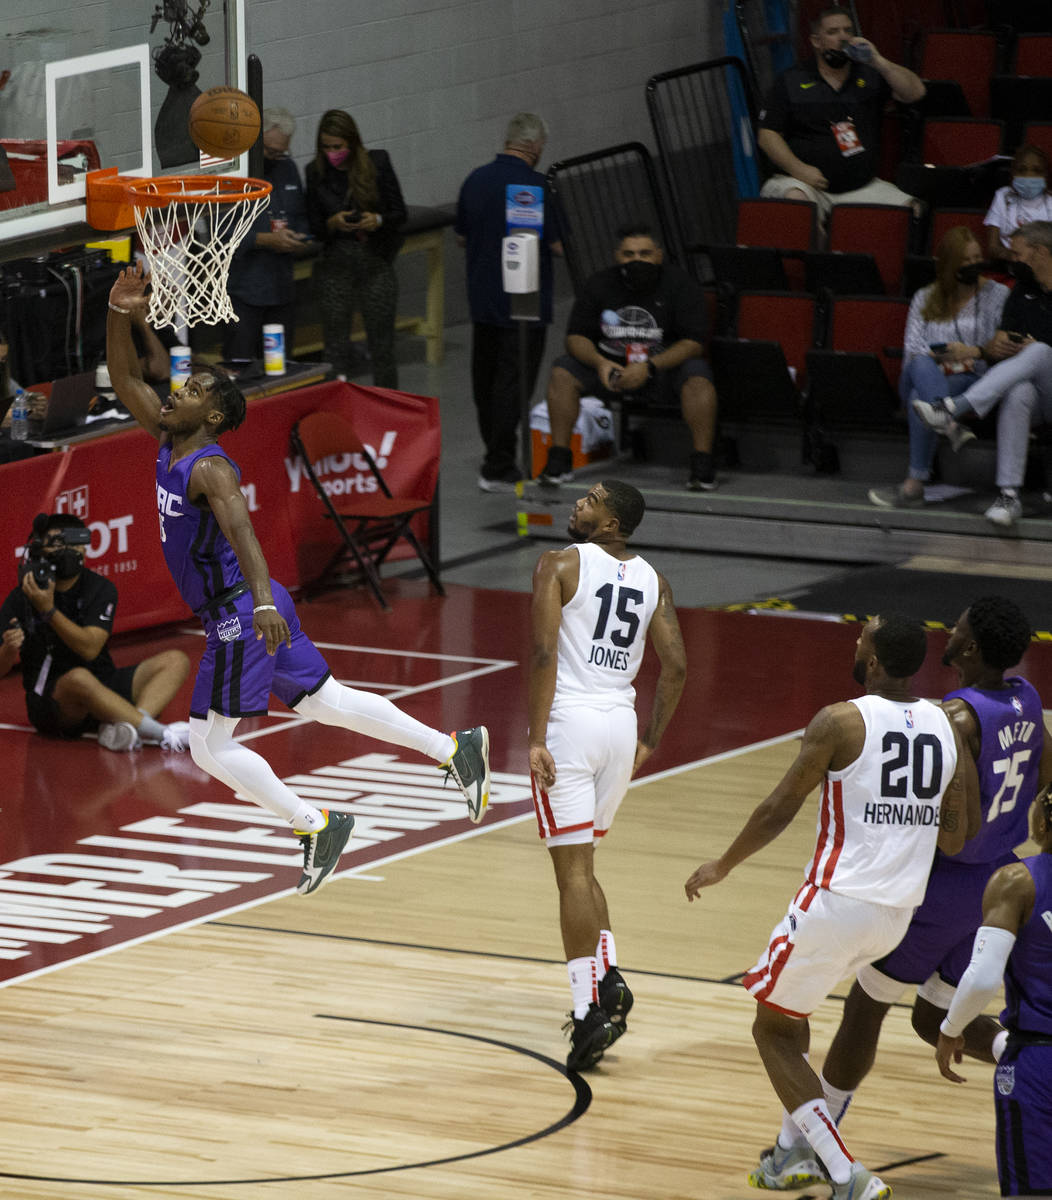 Sacramento Kings guard Davion Mitchell (15) jumps for a layup during the first half of an NBA S ...